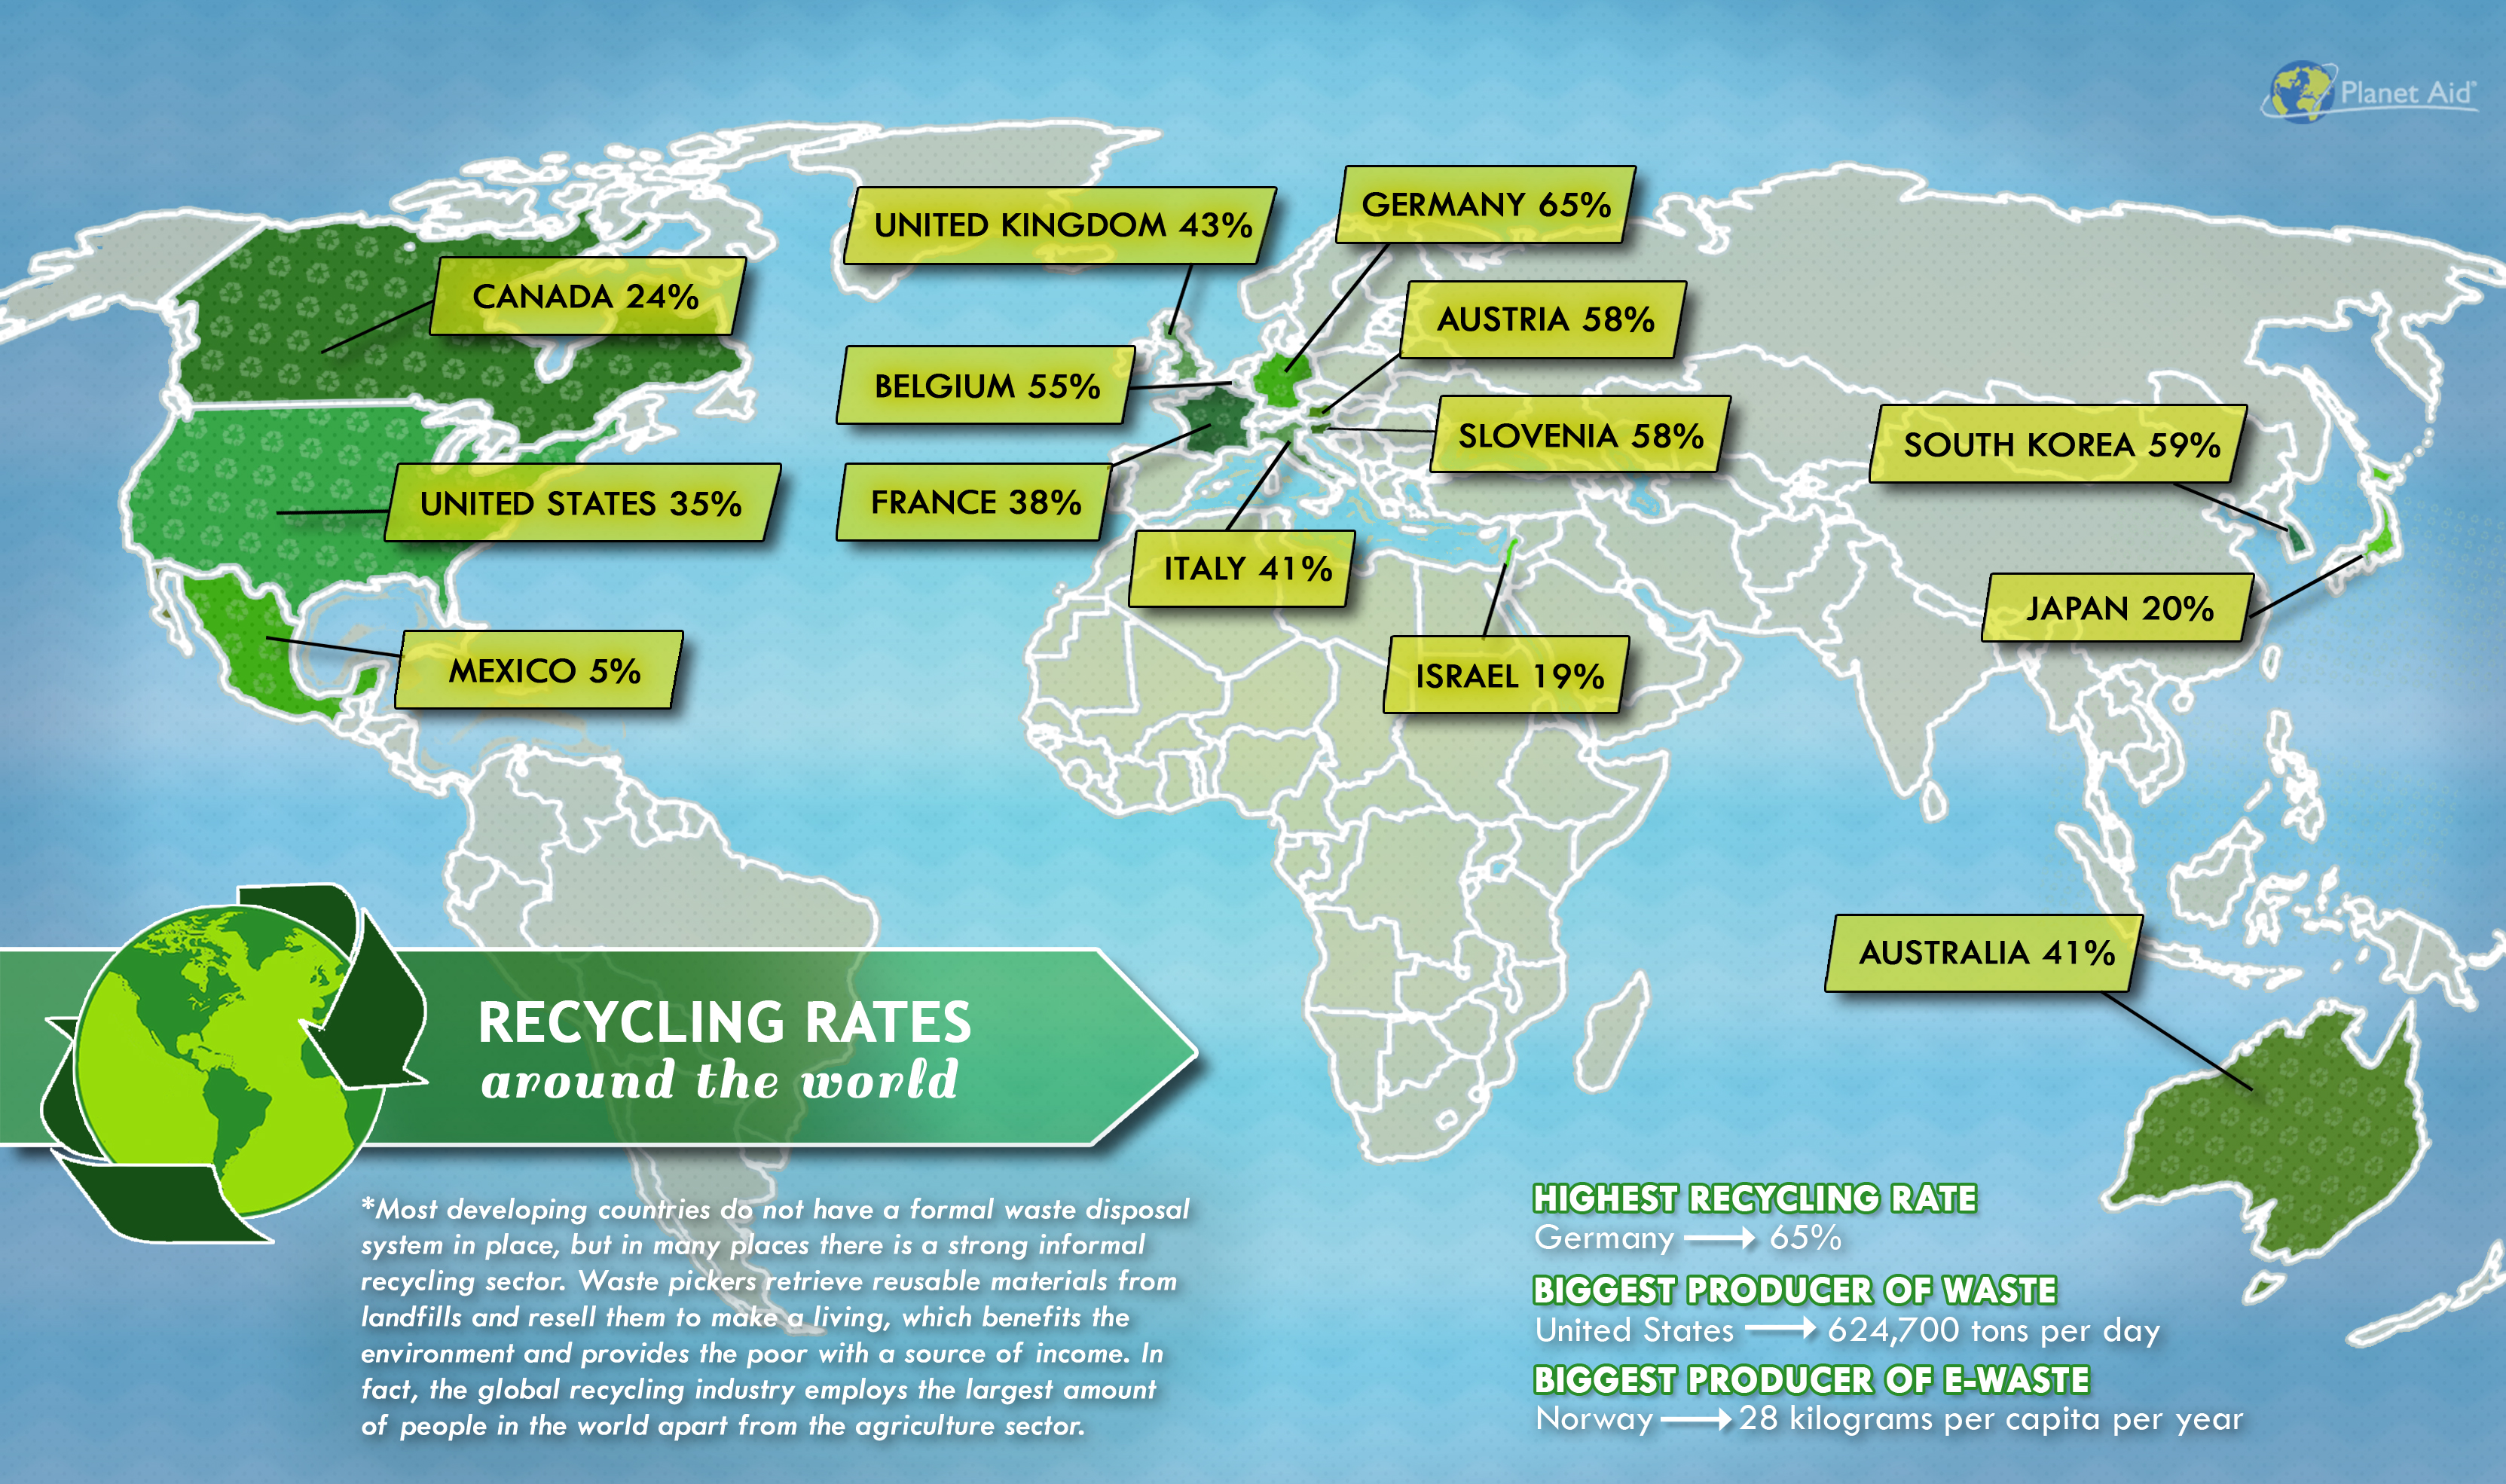 Which Countries Are Recycling Leaders? - Planet Aid, Inc